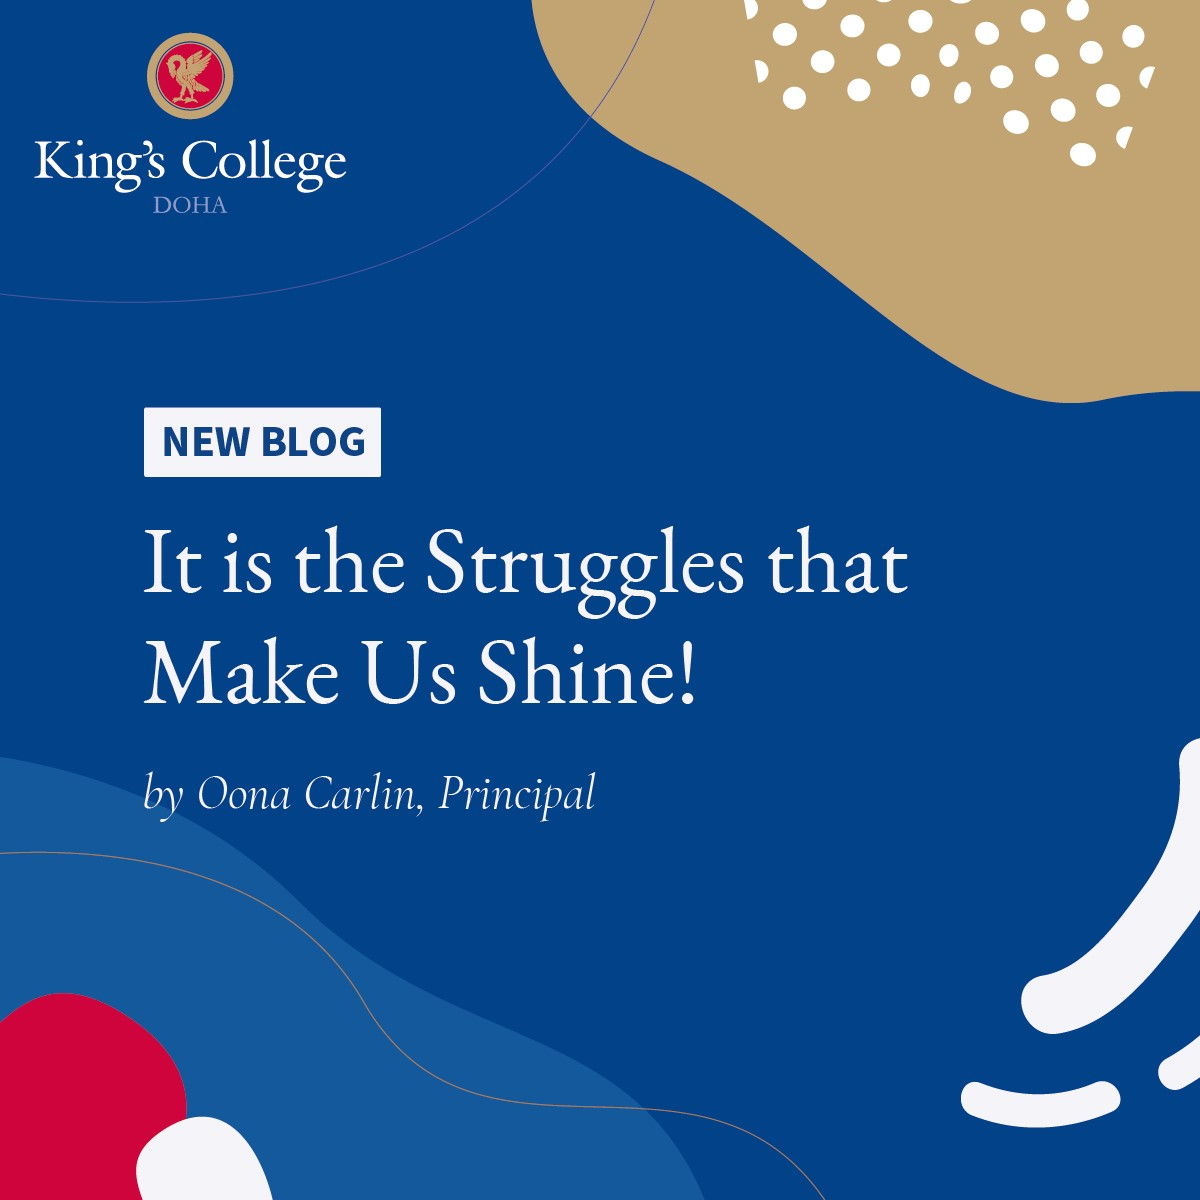 Blog - 'It is the Struggles that Make Us Shine!'